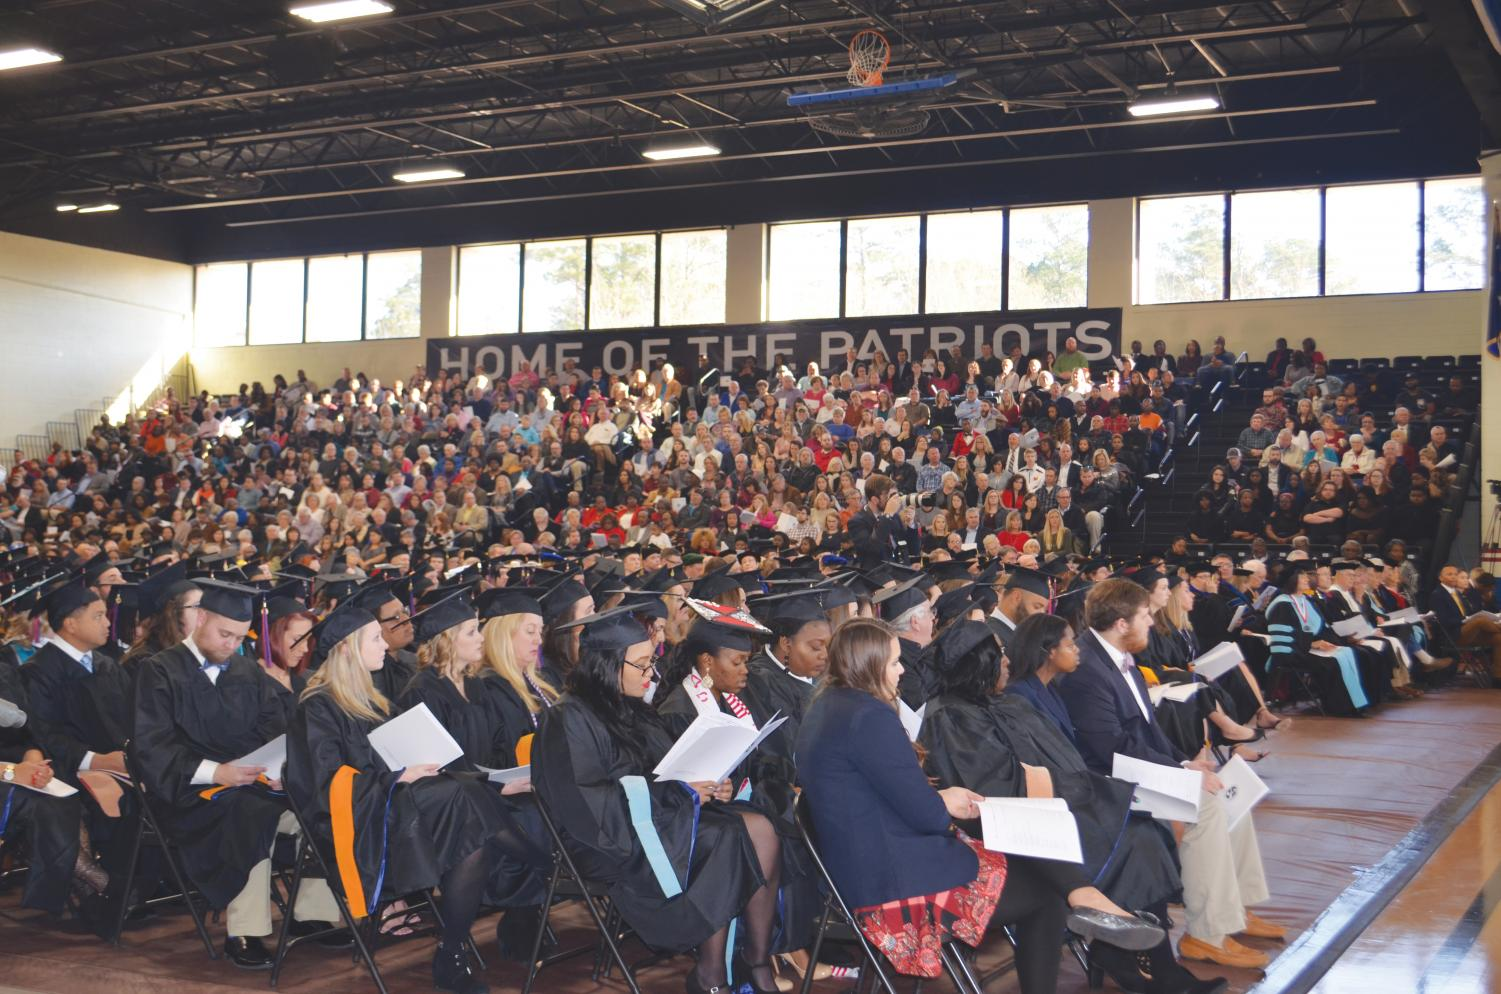 During the fall 2017 Commencement ceremony, FMU gains 309 new alumni. Among the graduating students, 32 graduated with honors and three received university honors.